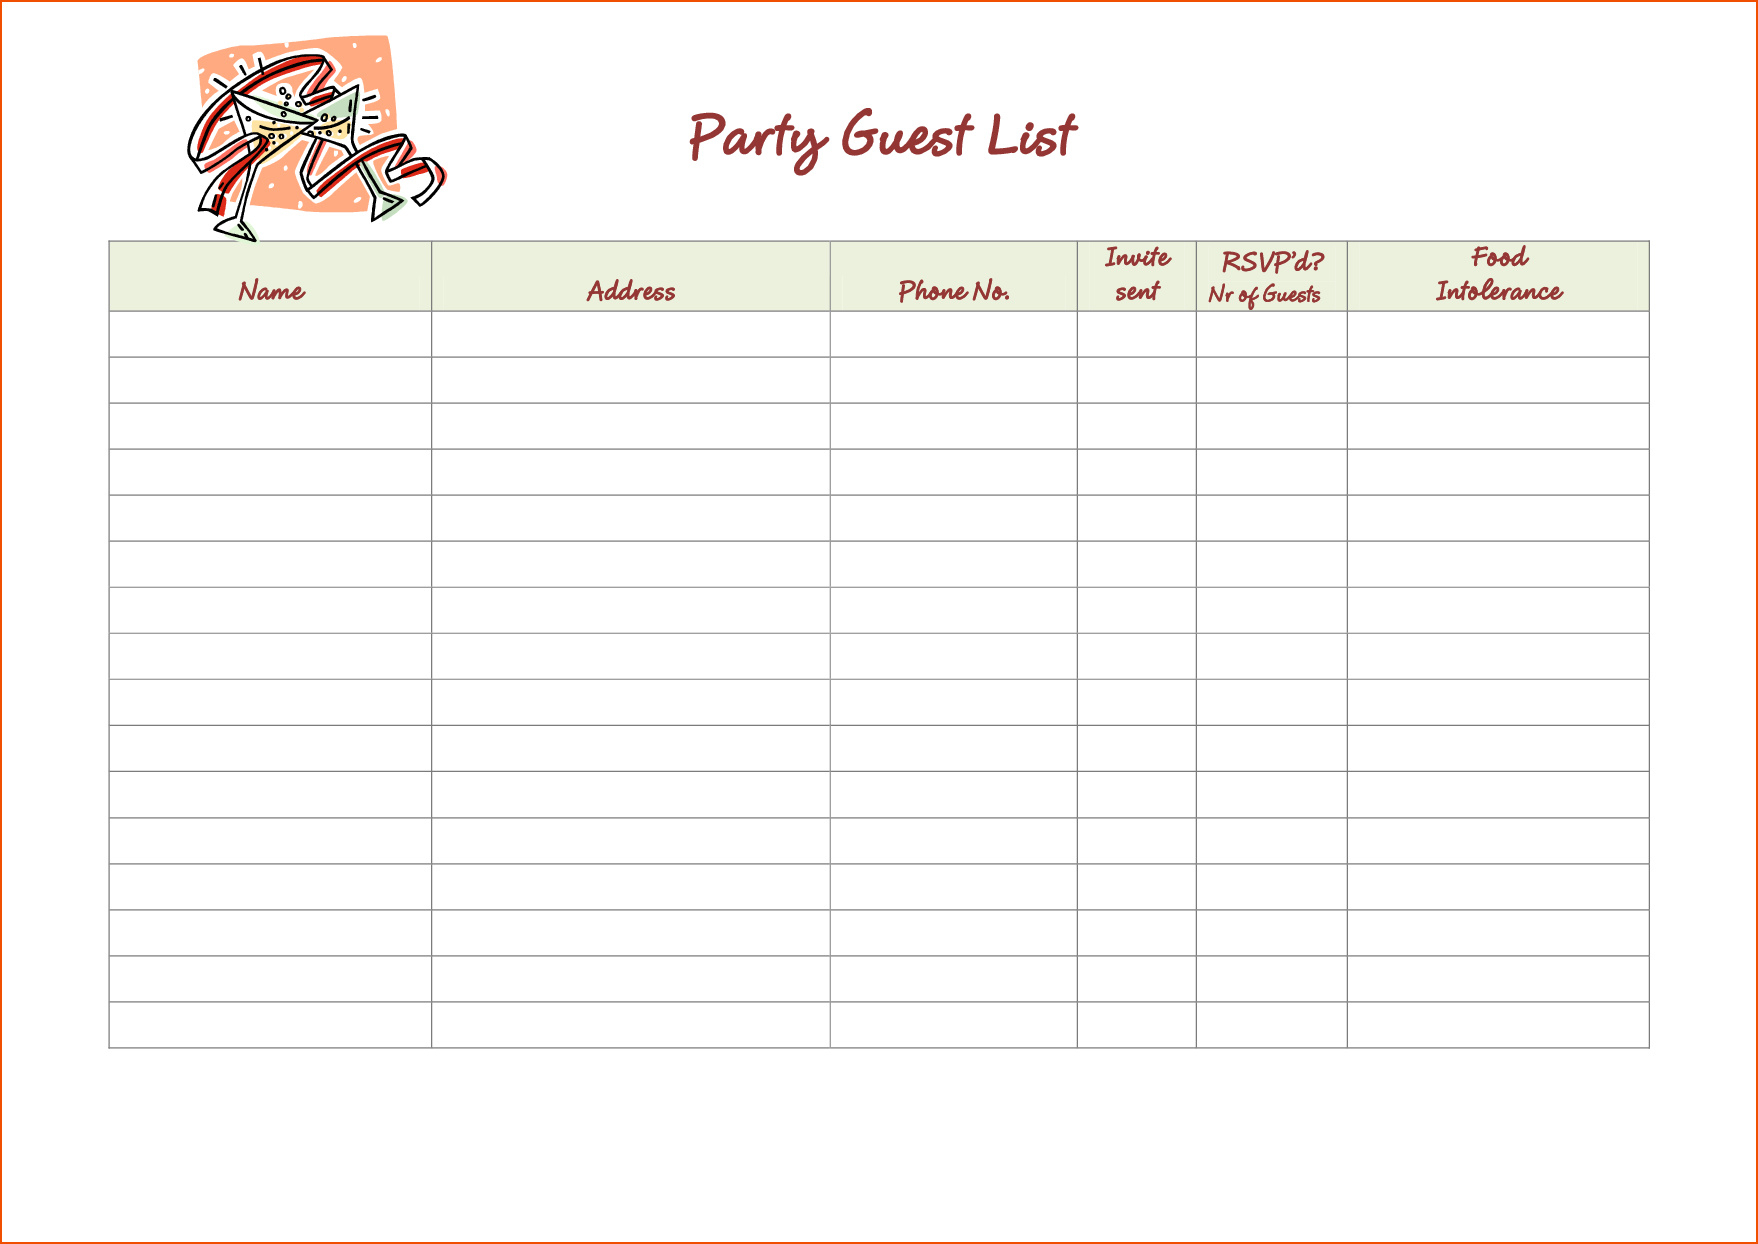 Wedding Guest List Excel Spreadsheet With Regard To Guest List Template Excel Beautiful Wedding Bud Excel Spreadsheet